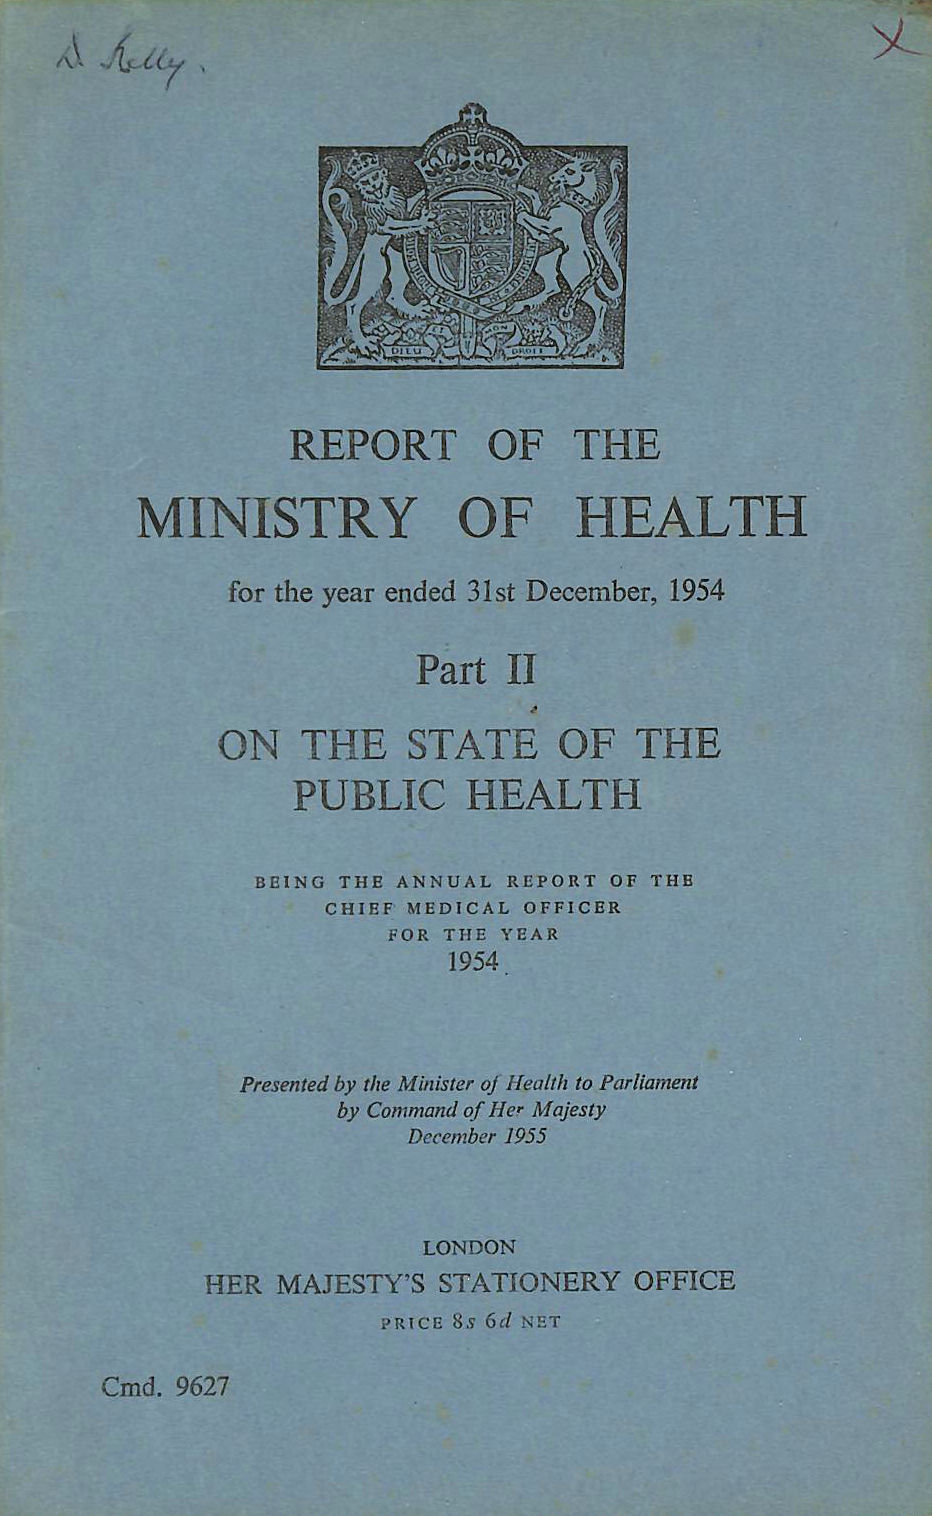 Image for Annual Report of the Chief Medical Officer of the Ministry of Health for the year 1954, Part II